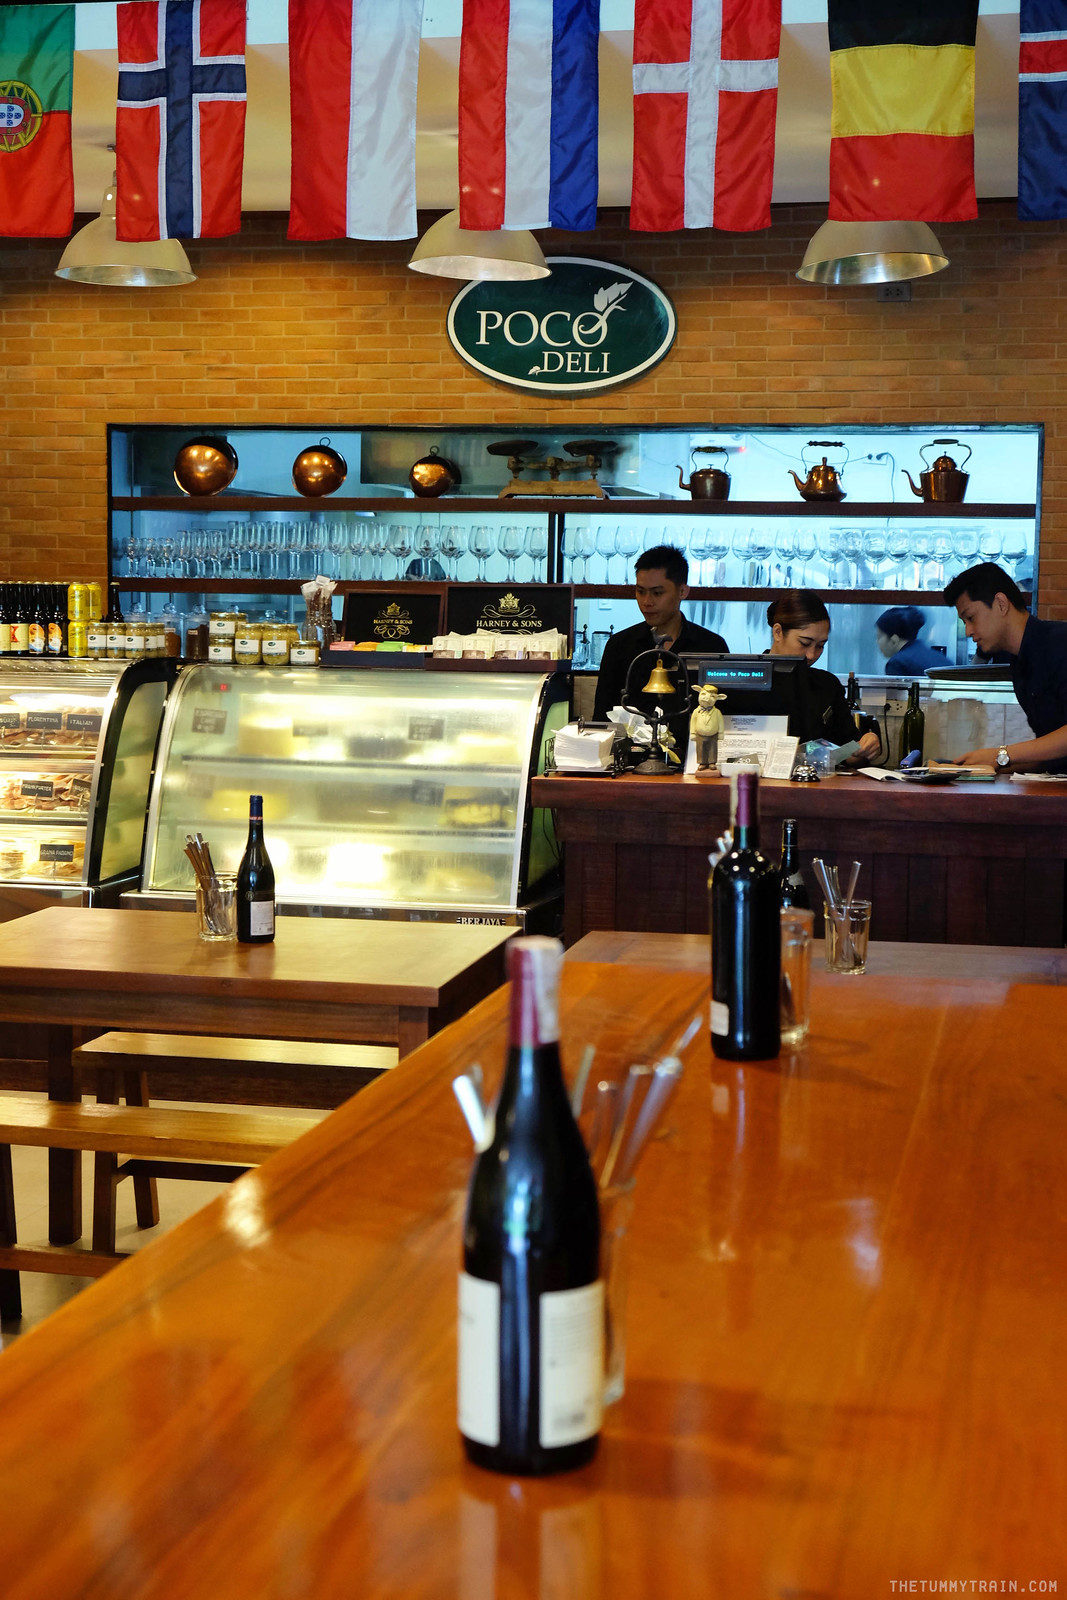 30910332262 1376fee2e4 h - A delightful European meal at Poco Deli Ayala Triangle